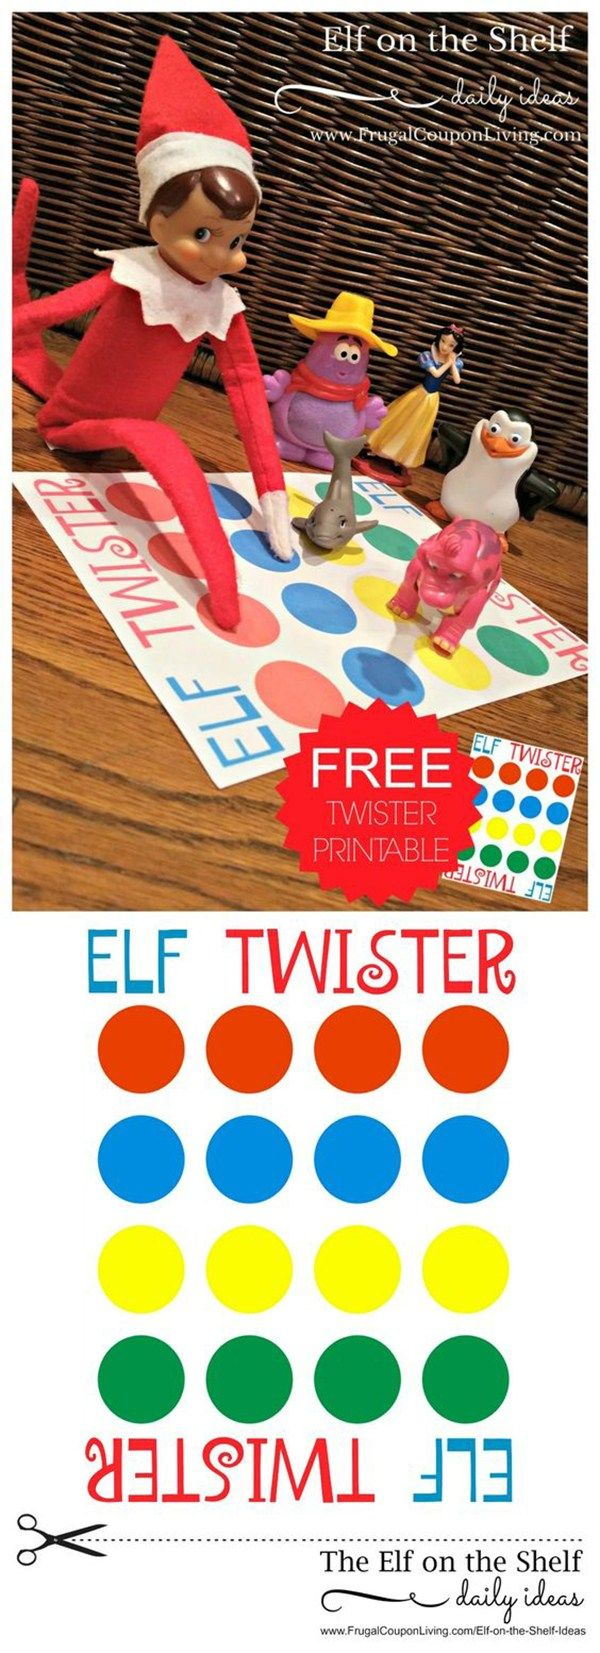 25 Free Elf on the Shelf Printables - Easy Elf on the Shelf Ideas